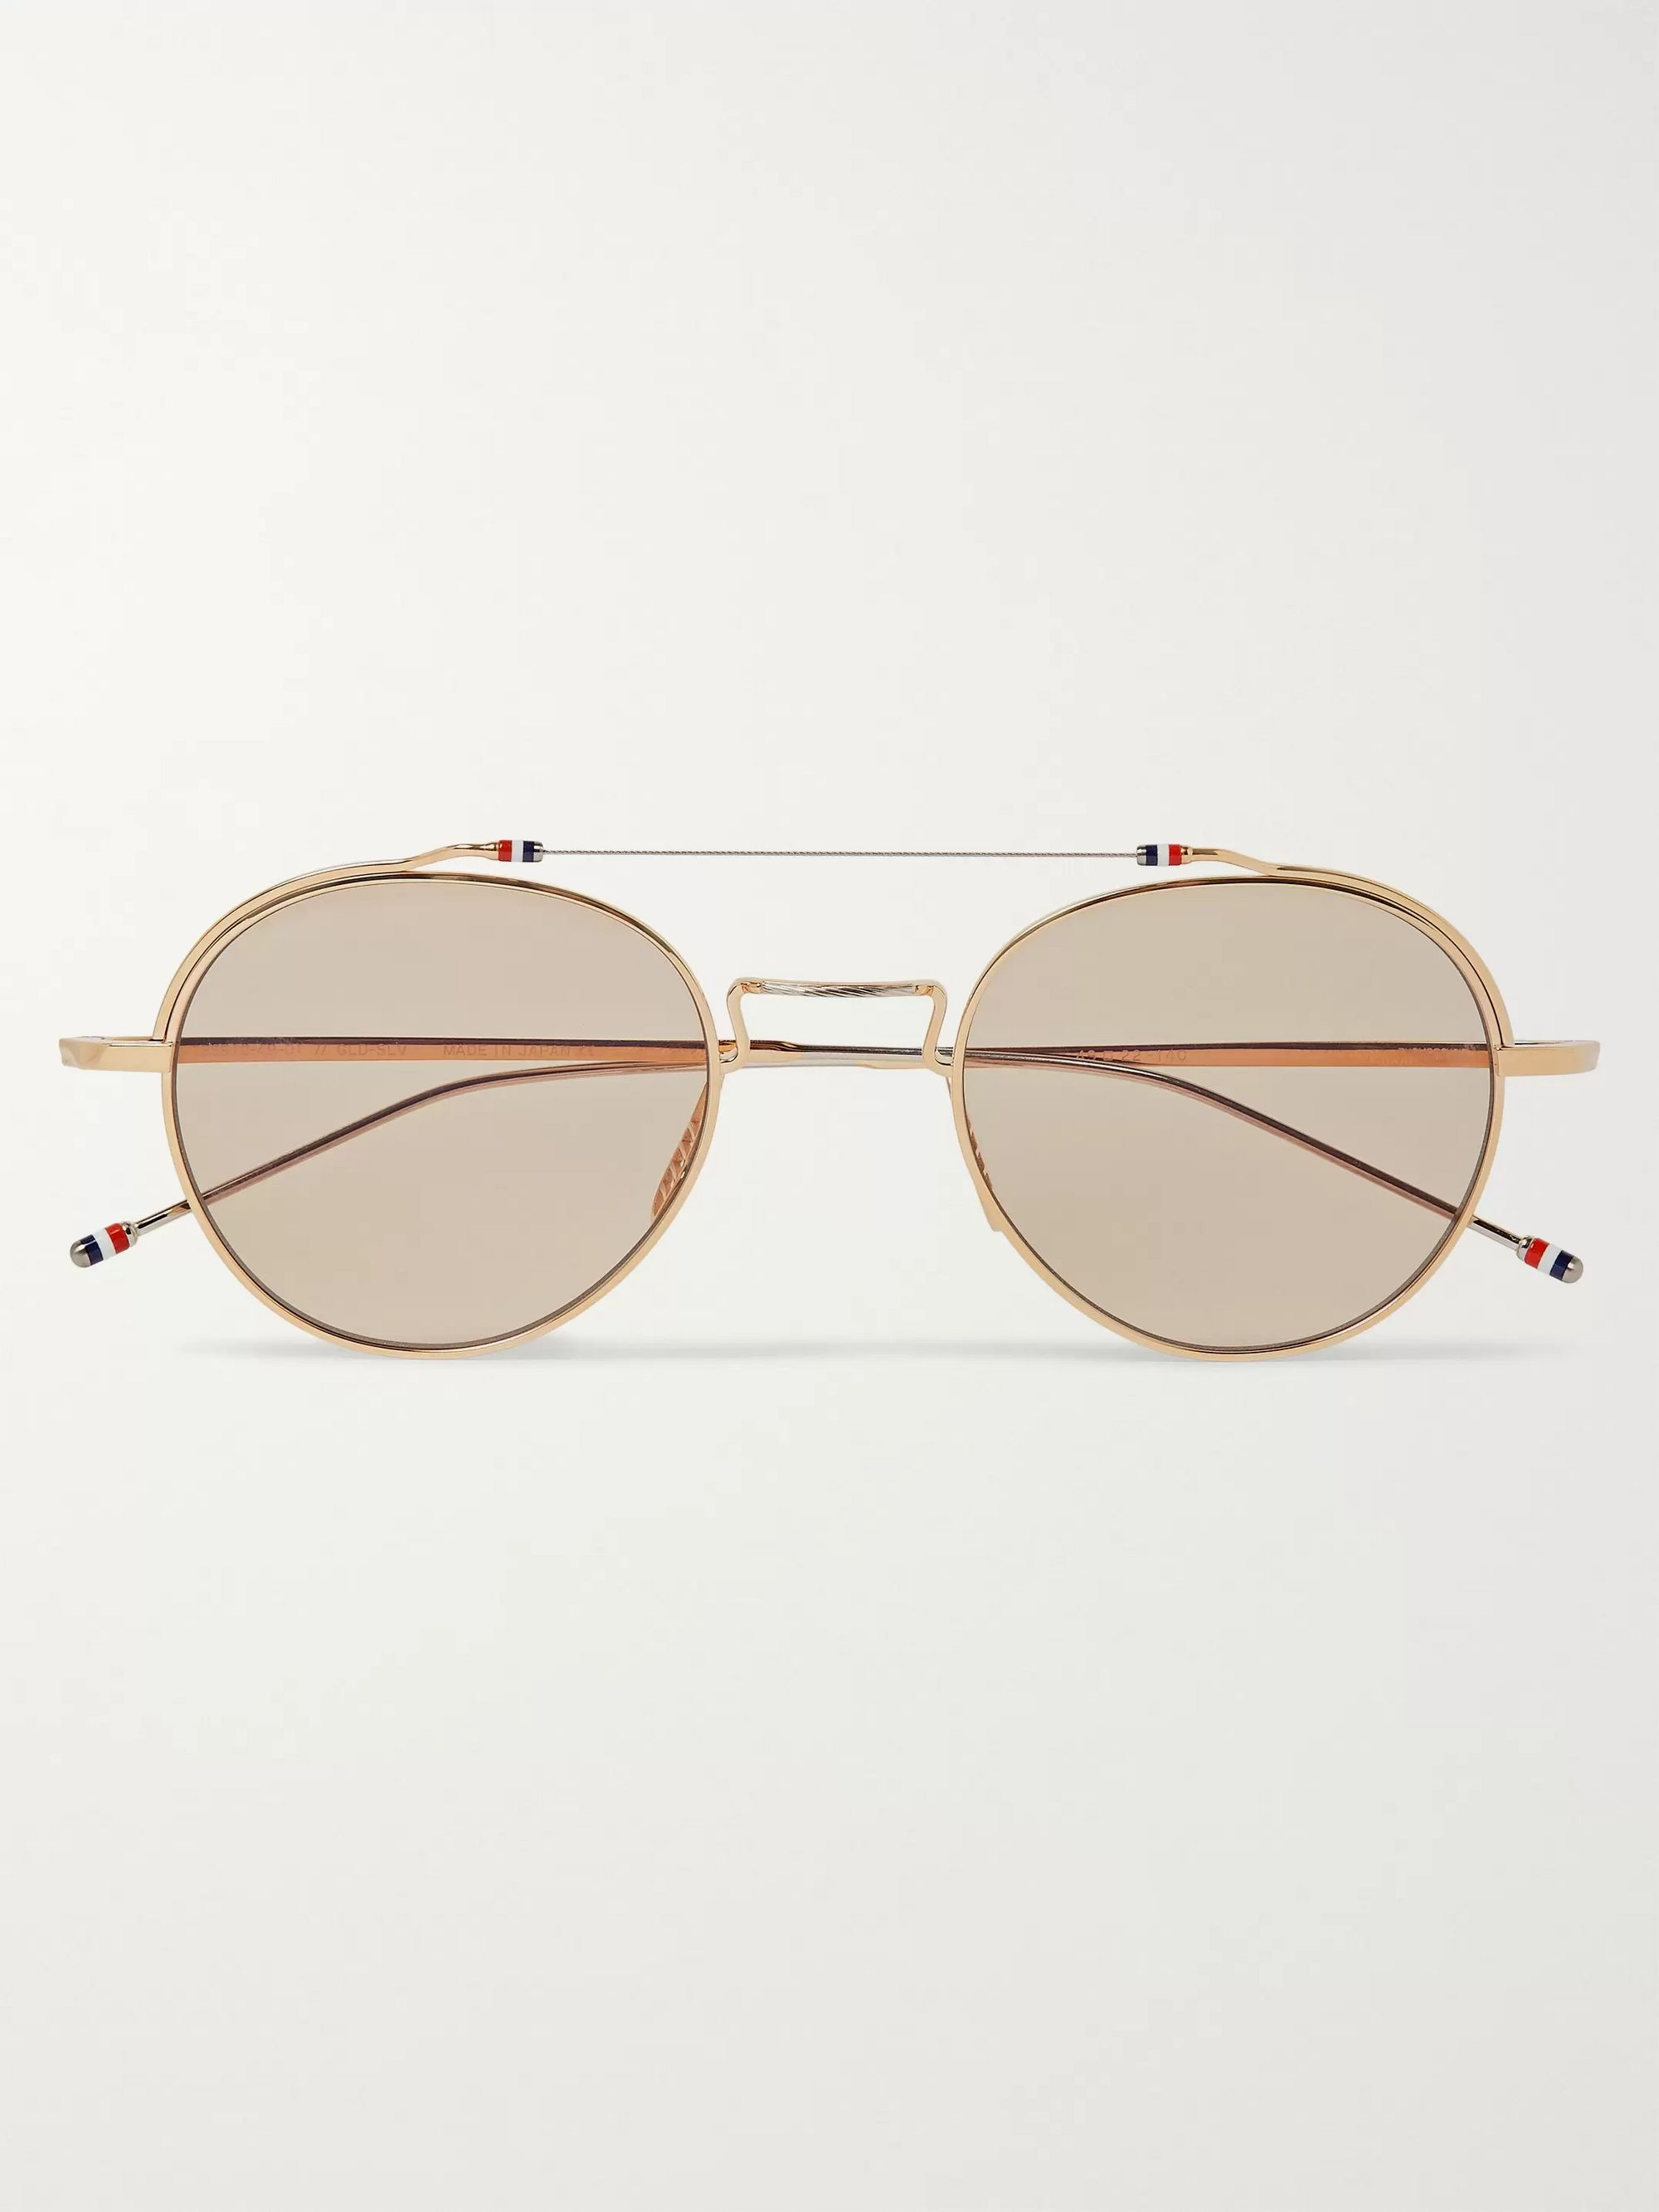 Thom Browne Round-Frame Gold-Tone Optical Glasses